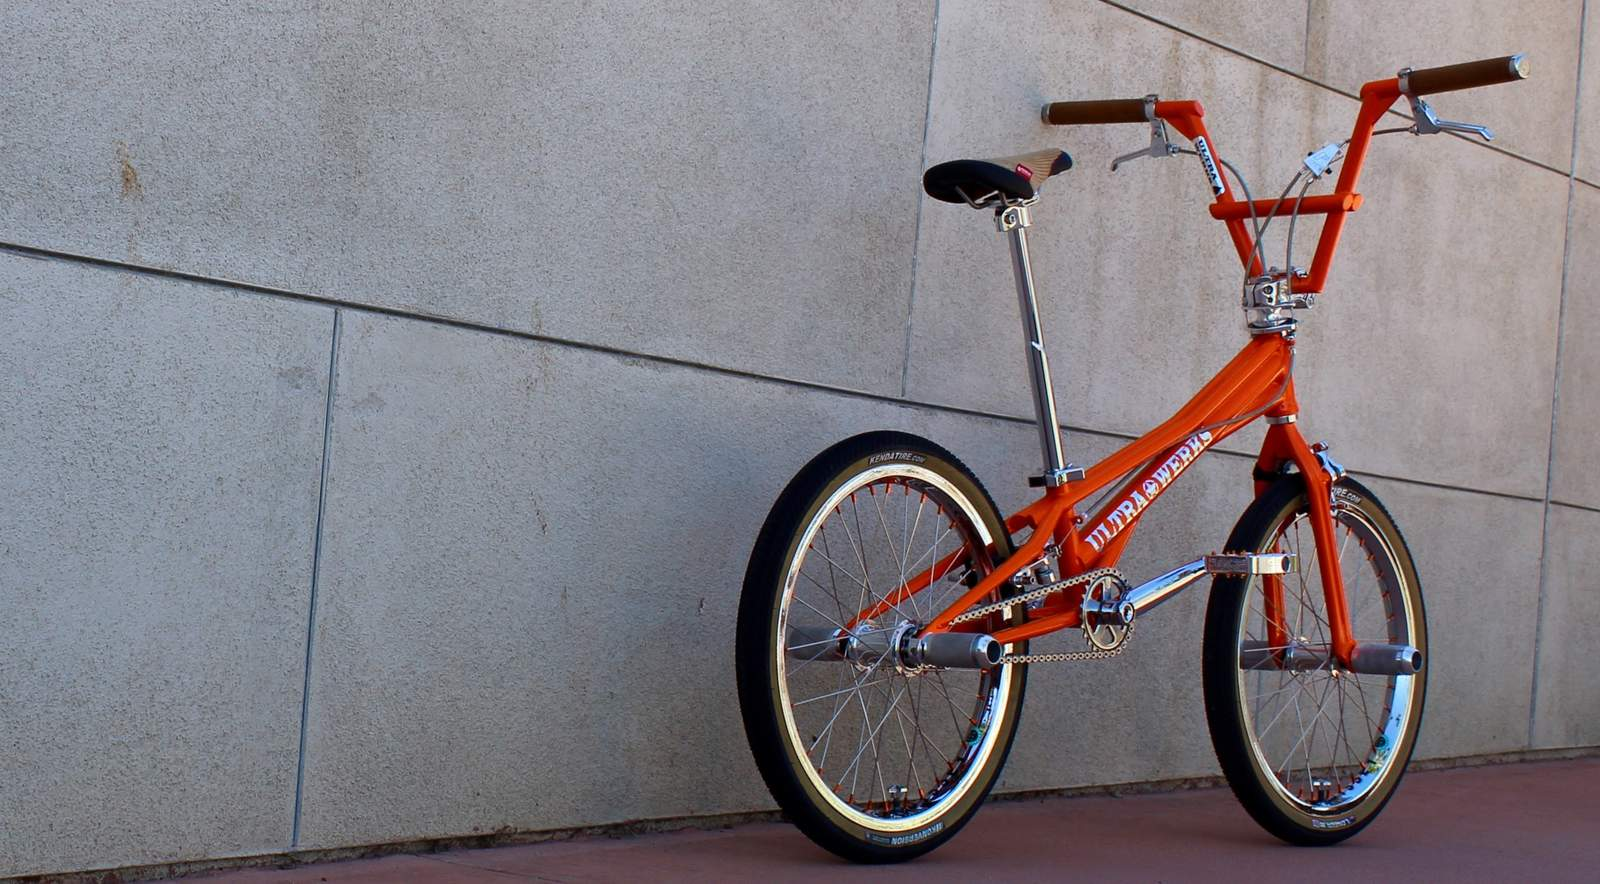 http://uploads.bmxmuseum.com/user-images/55127/2016-ultra-werks--mixology-custom-flatland-machine-0025bd1edf7f3.jpg